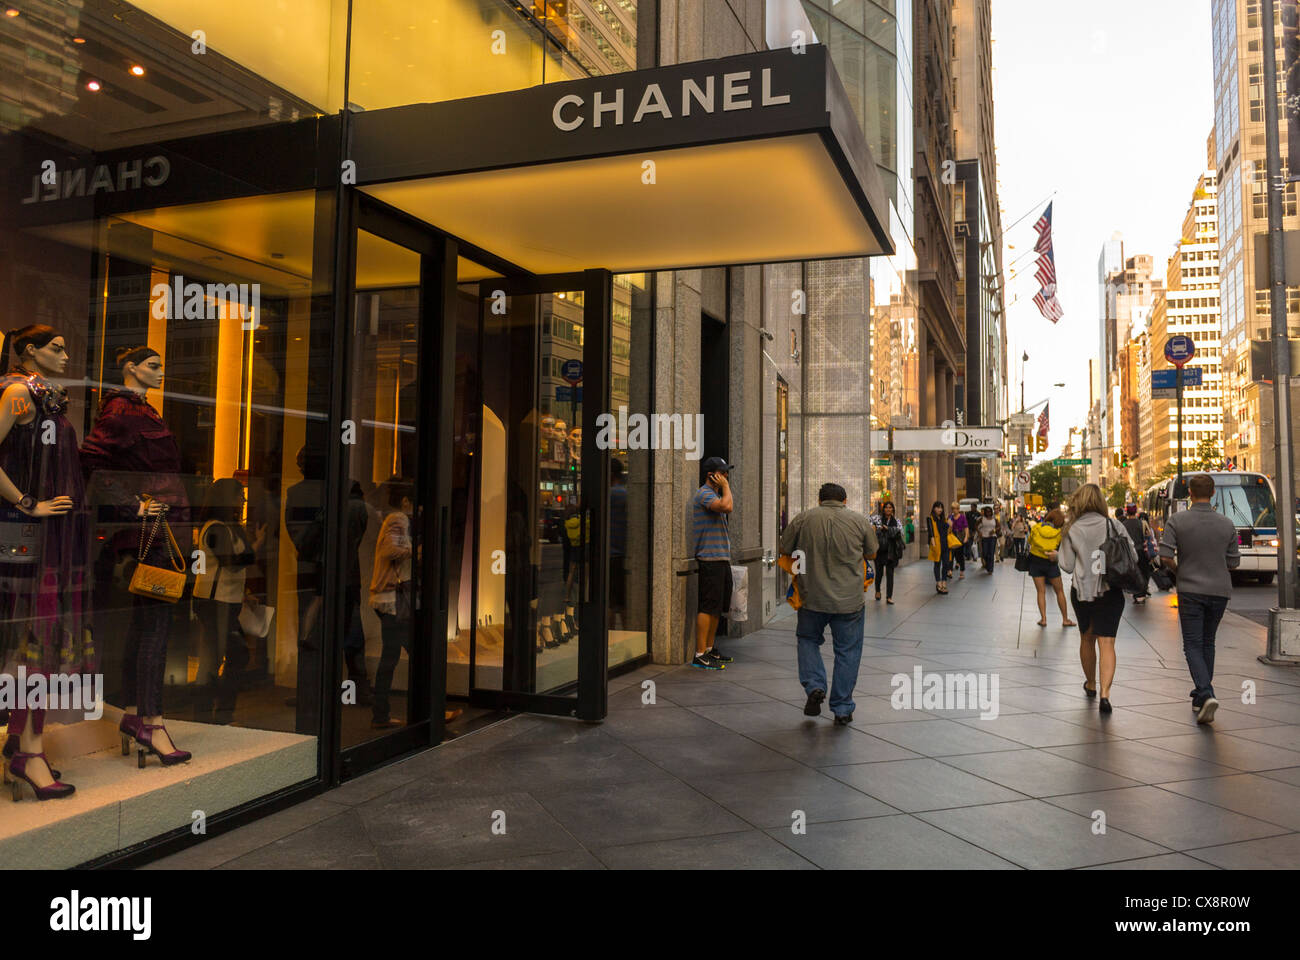 New York Ny Usa People Shopping Street Scenes Luxury